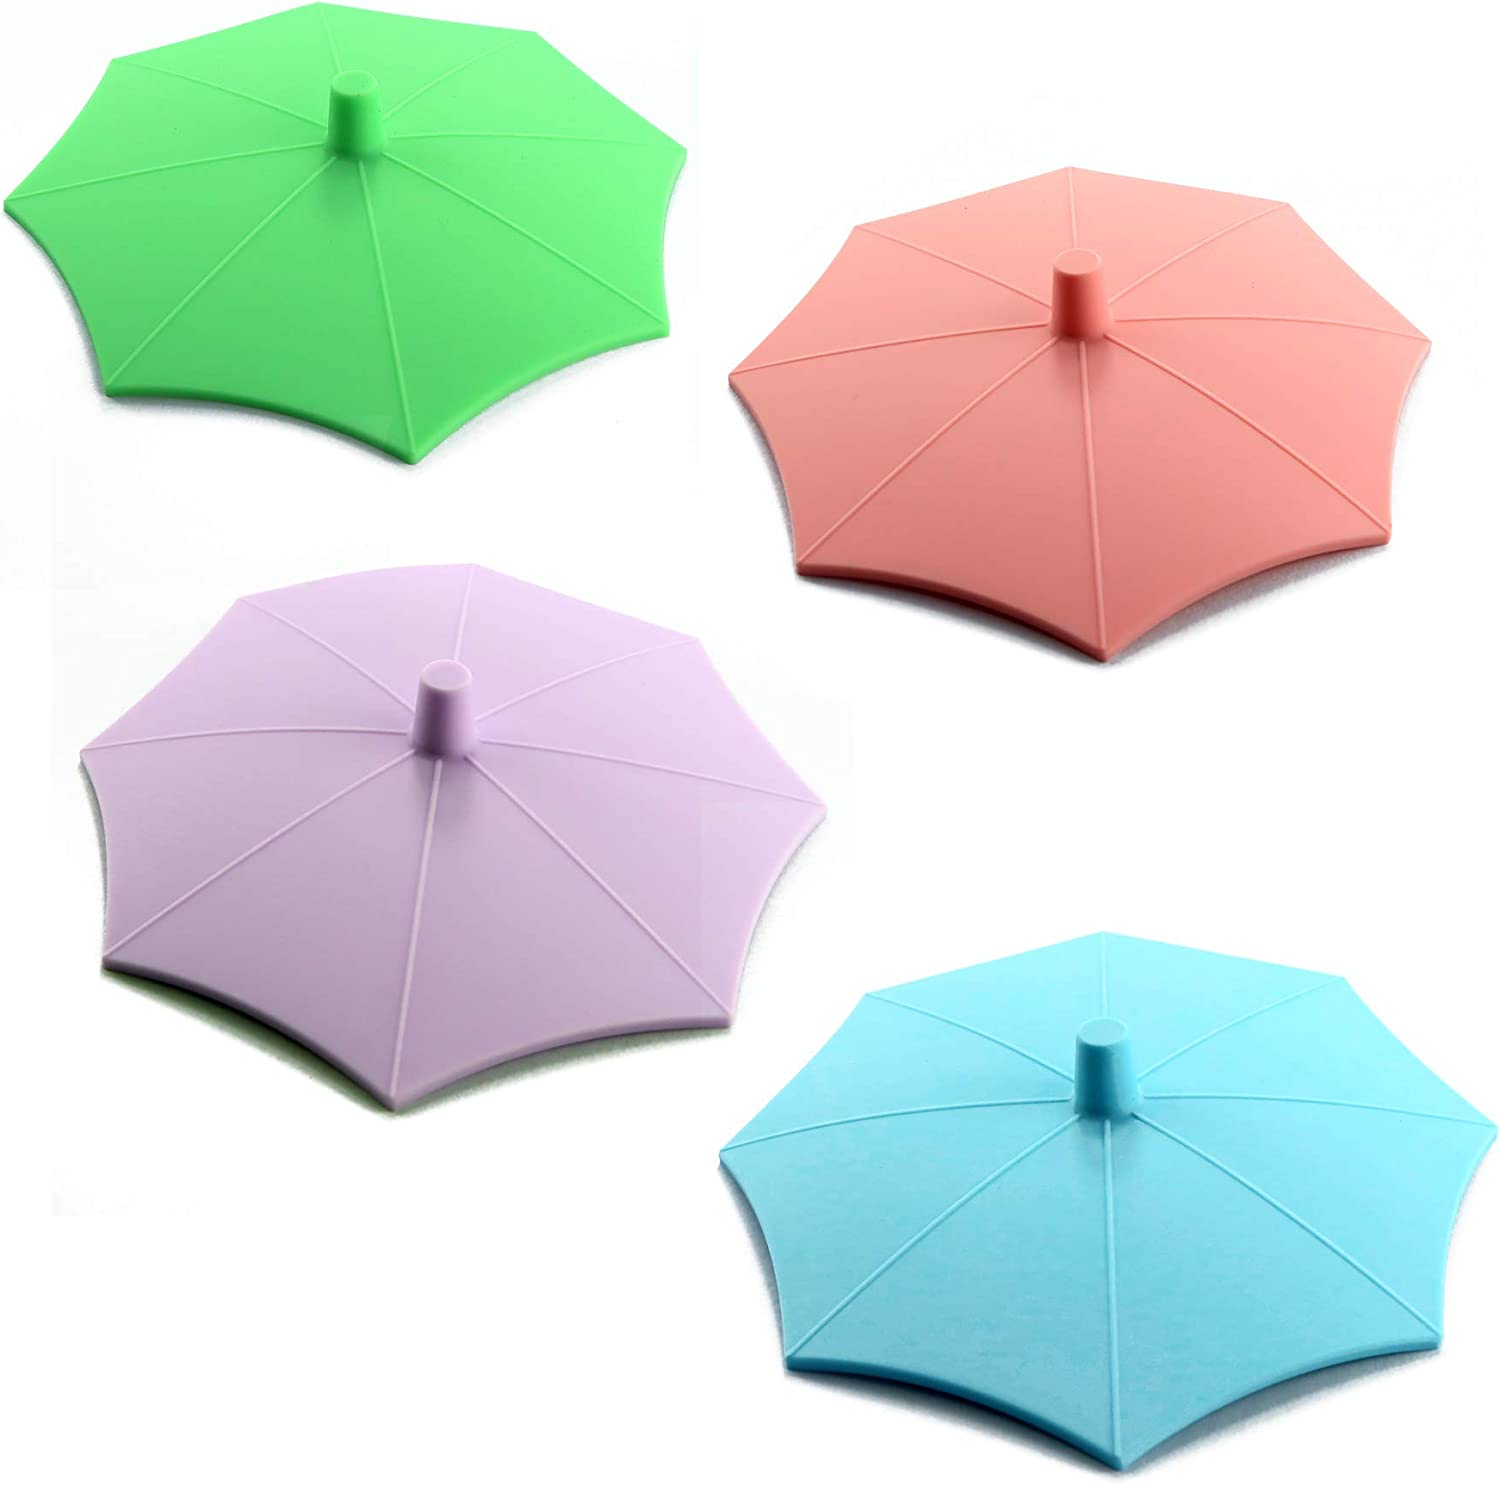 NEW Silicone Umbrella Cup Covers 4-Pack(Upgrade oct. 2020), Dust-Proof Food Grade Lids Keep Drinks Warm or Cold Longer, Lids for Mugs, Tea Pots, Flexible Mug Covers Lids for Coffee&Tea.(Mix Colour)